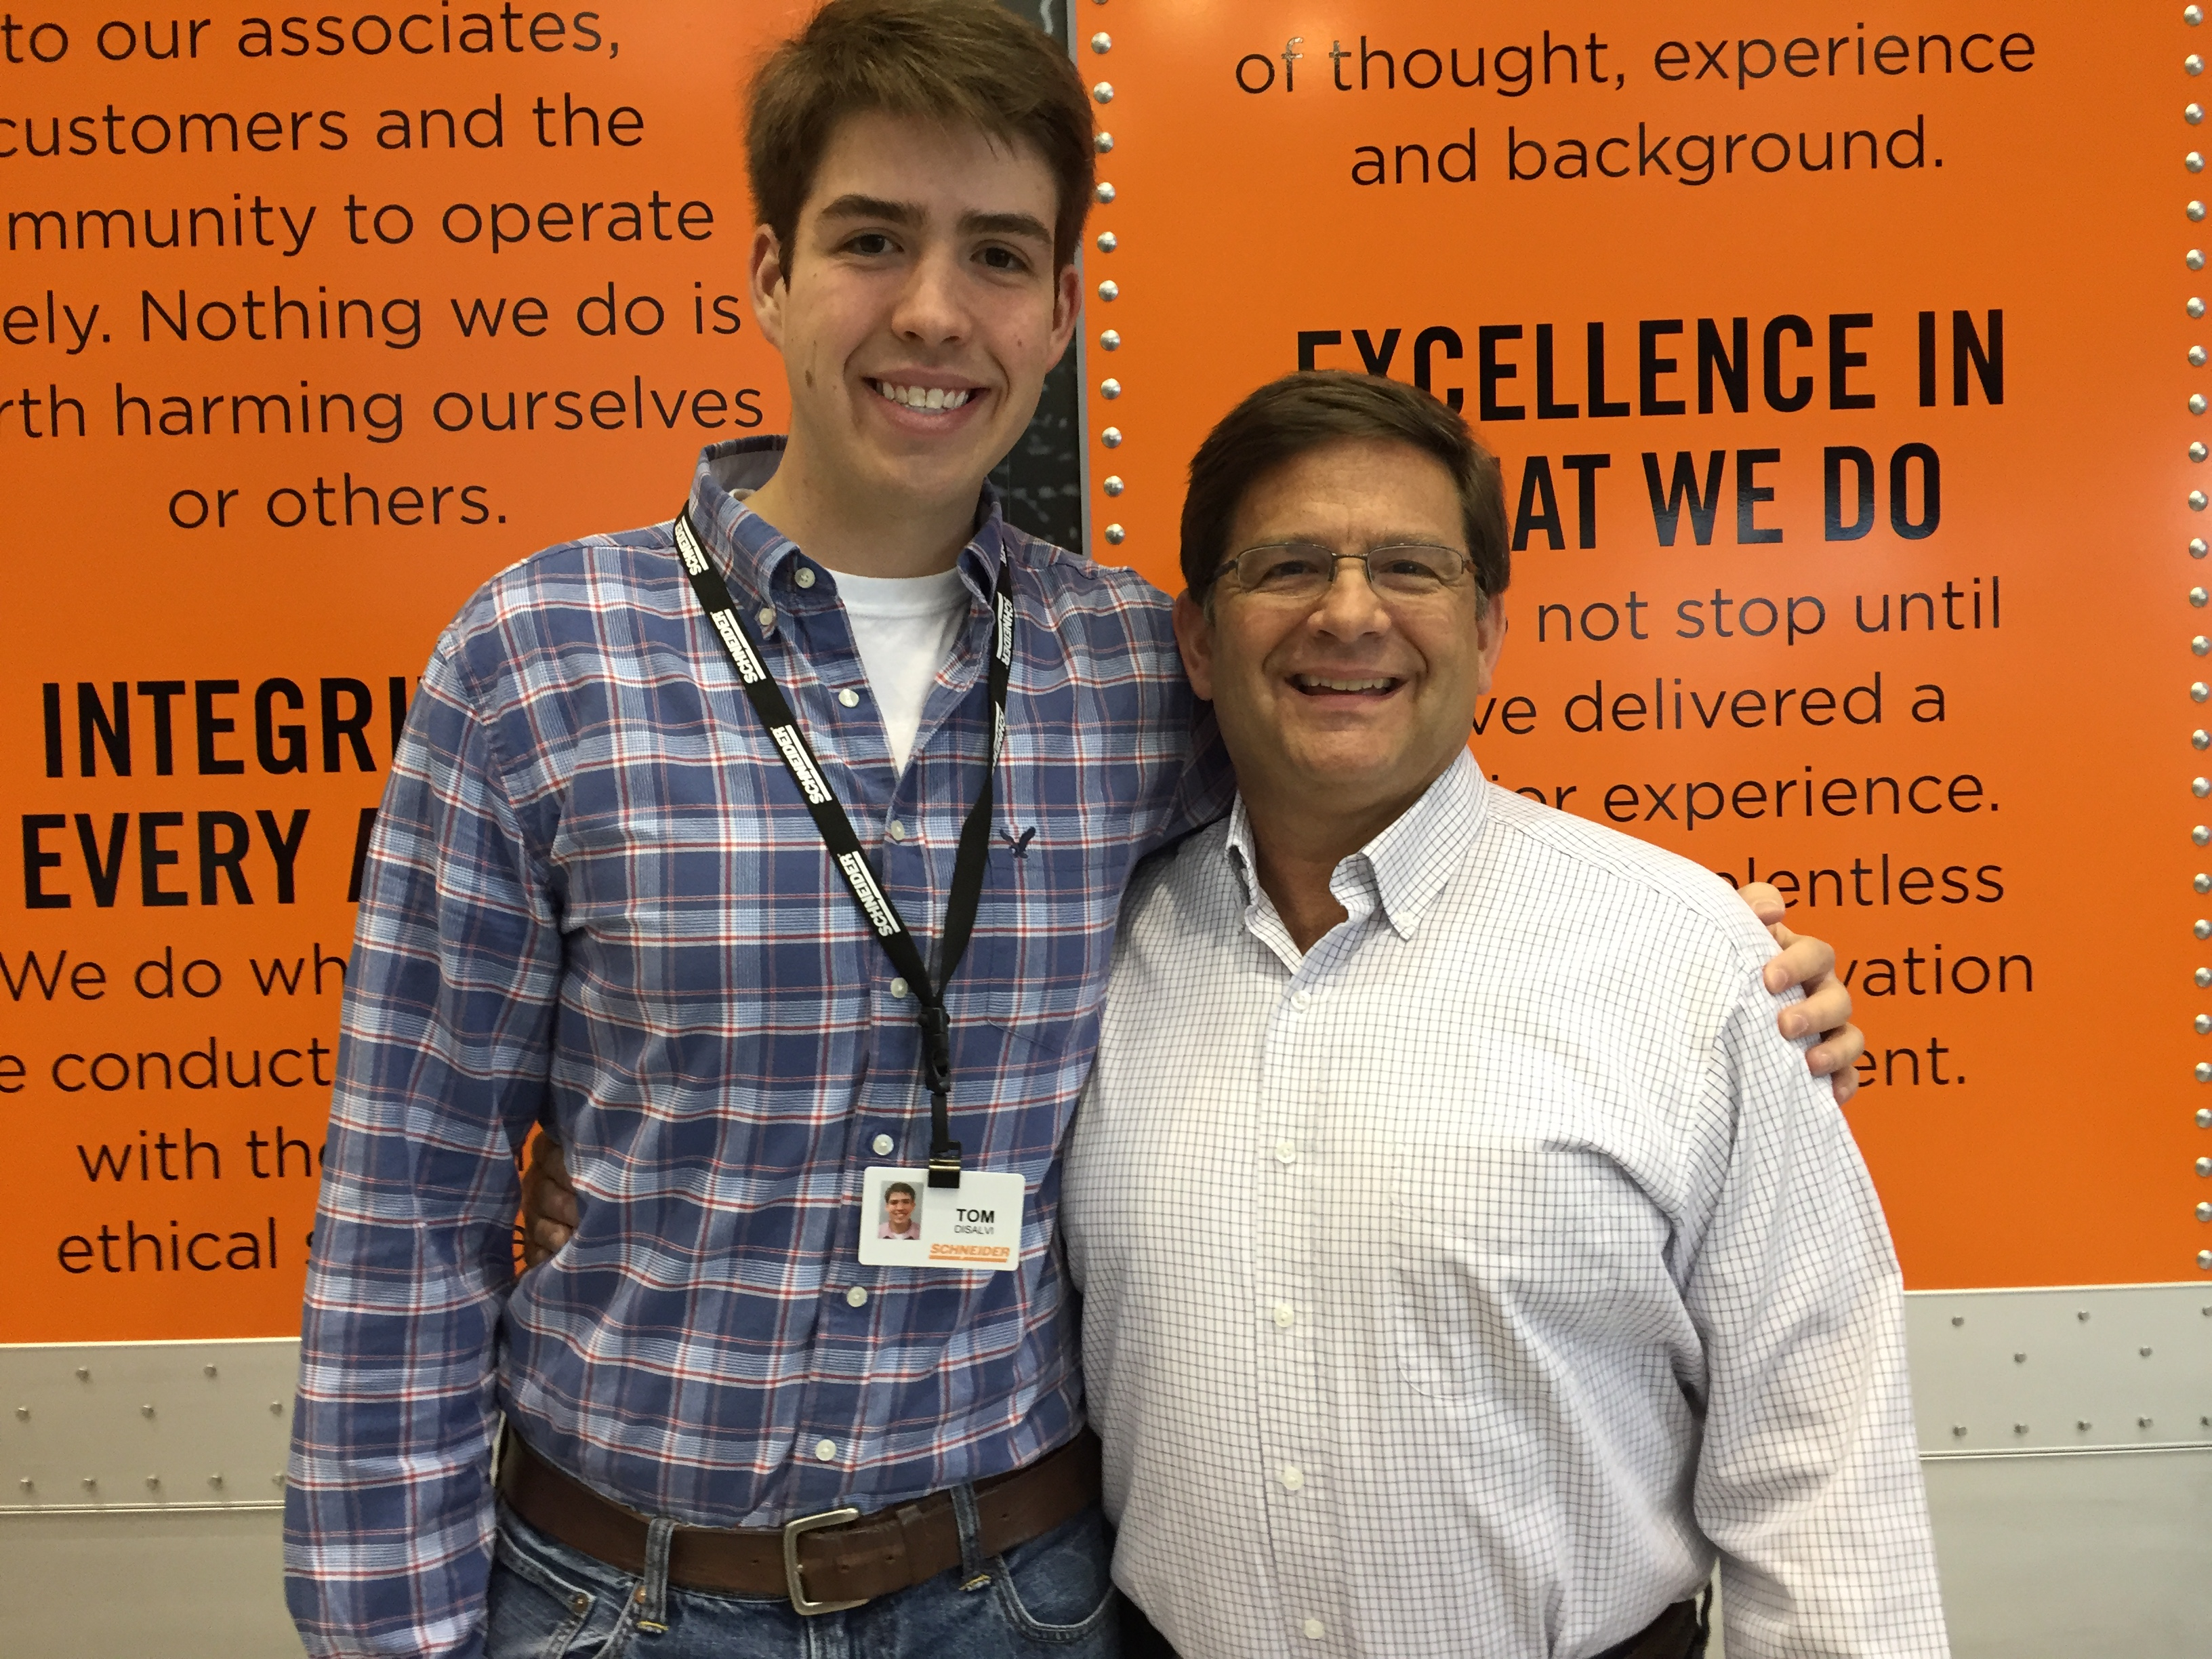 Father and son: Tom DiSalvi (right), Schneider's Vice President of Safety and Loss Prevention, and Thomas DiSalvi, a Paralegal Intern at Schneider